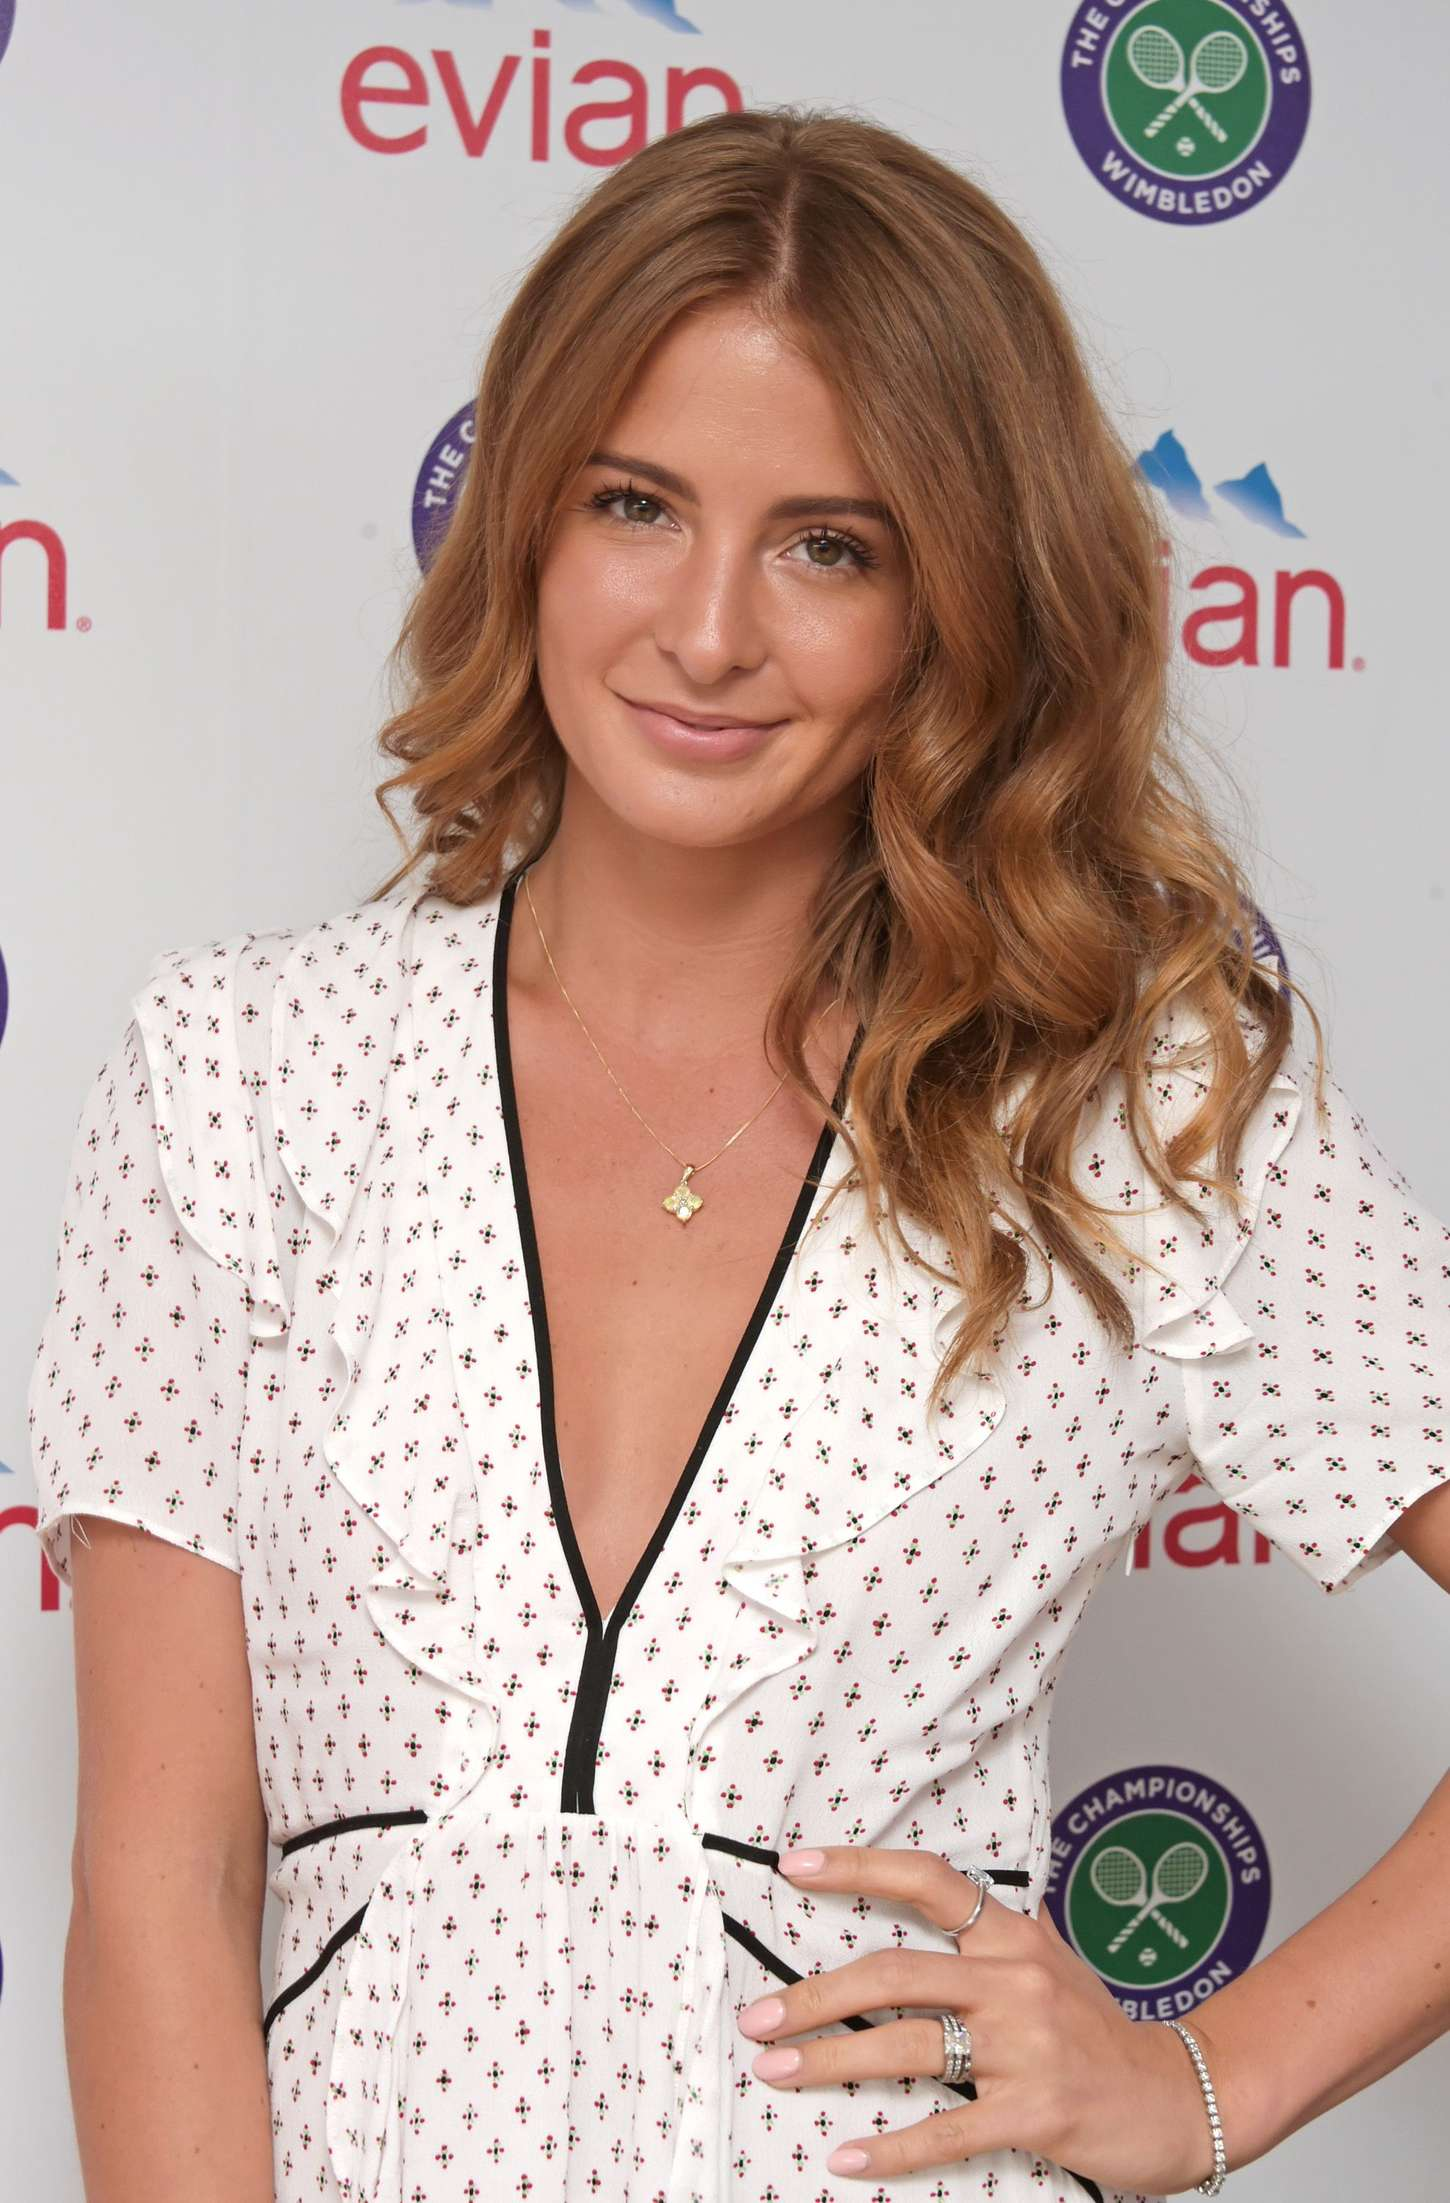 Millie Mackintosh Evian Live young suite on the opening day of Wimbledon in London